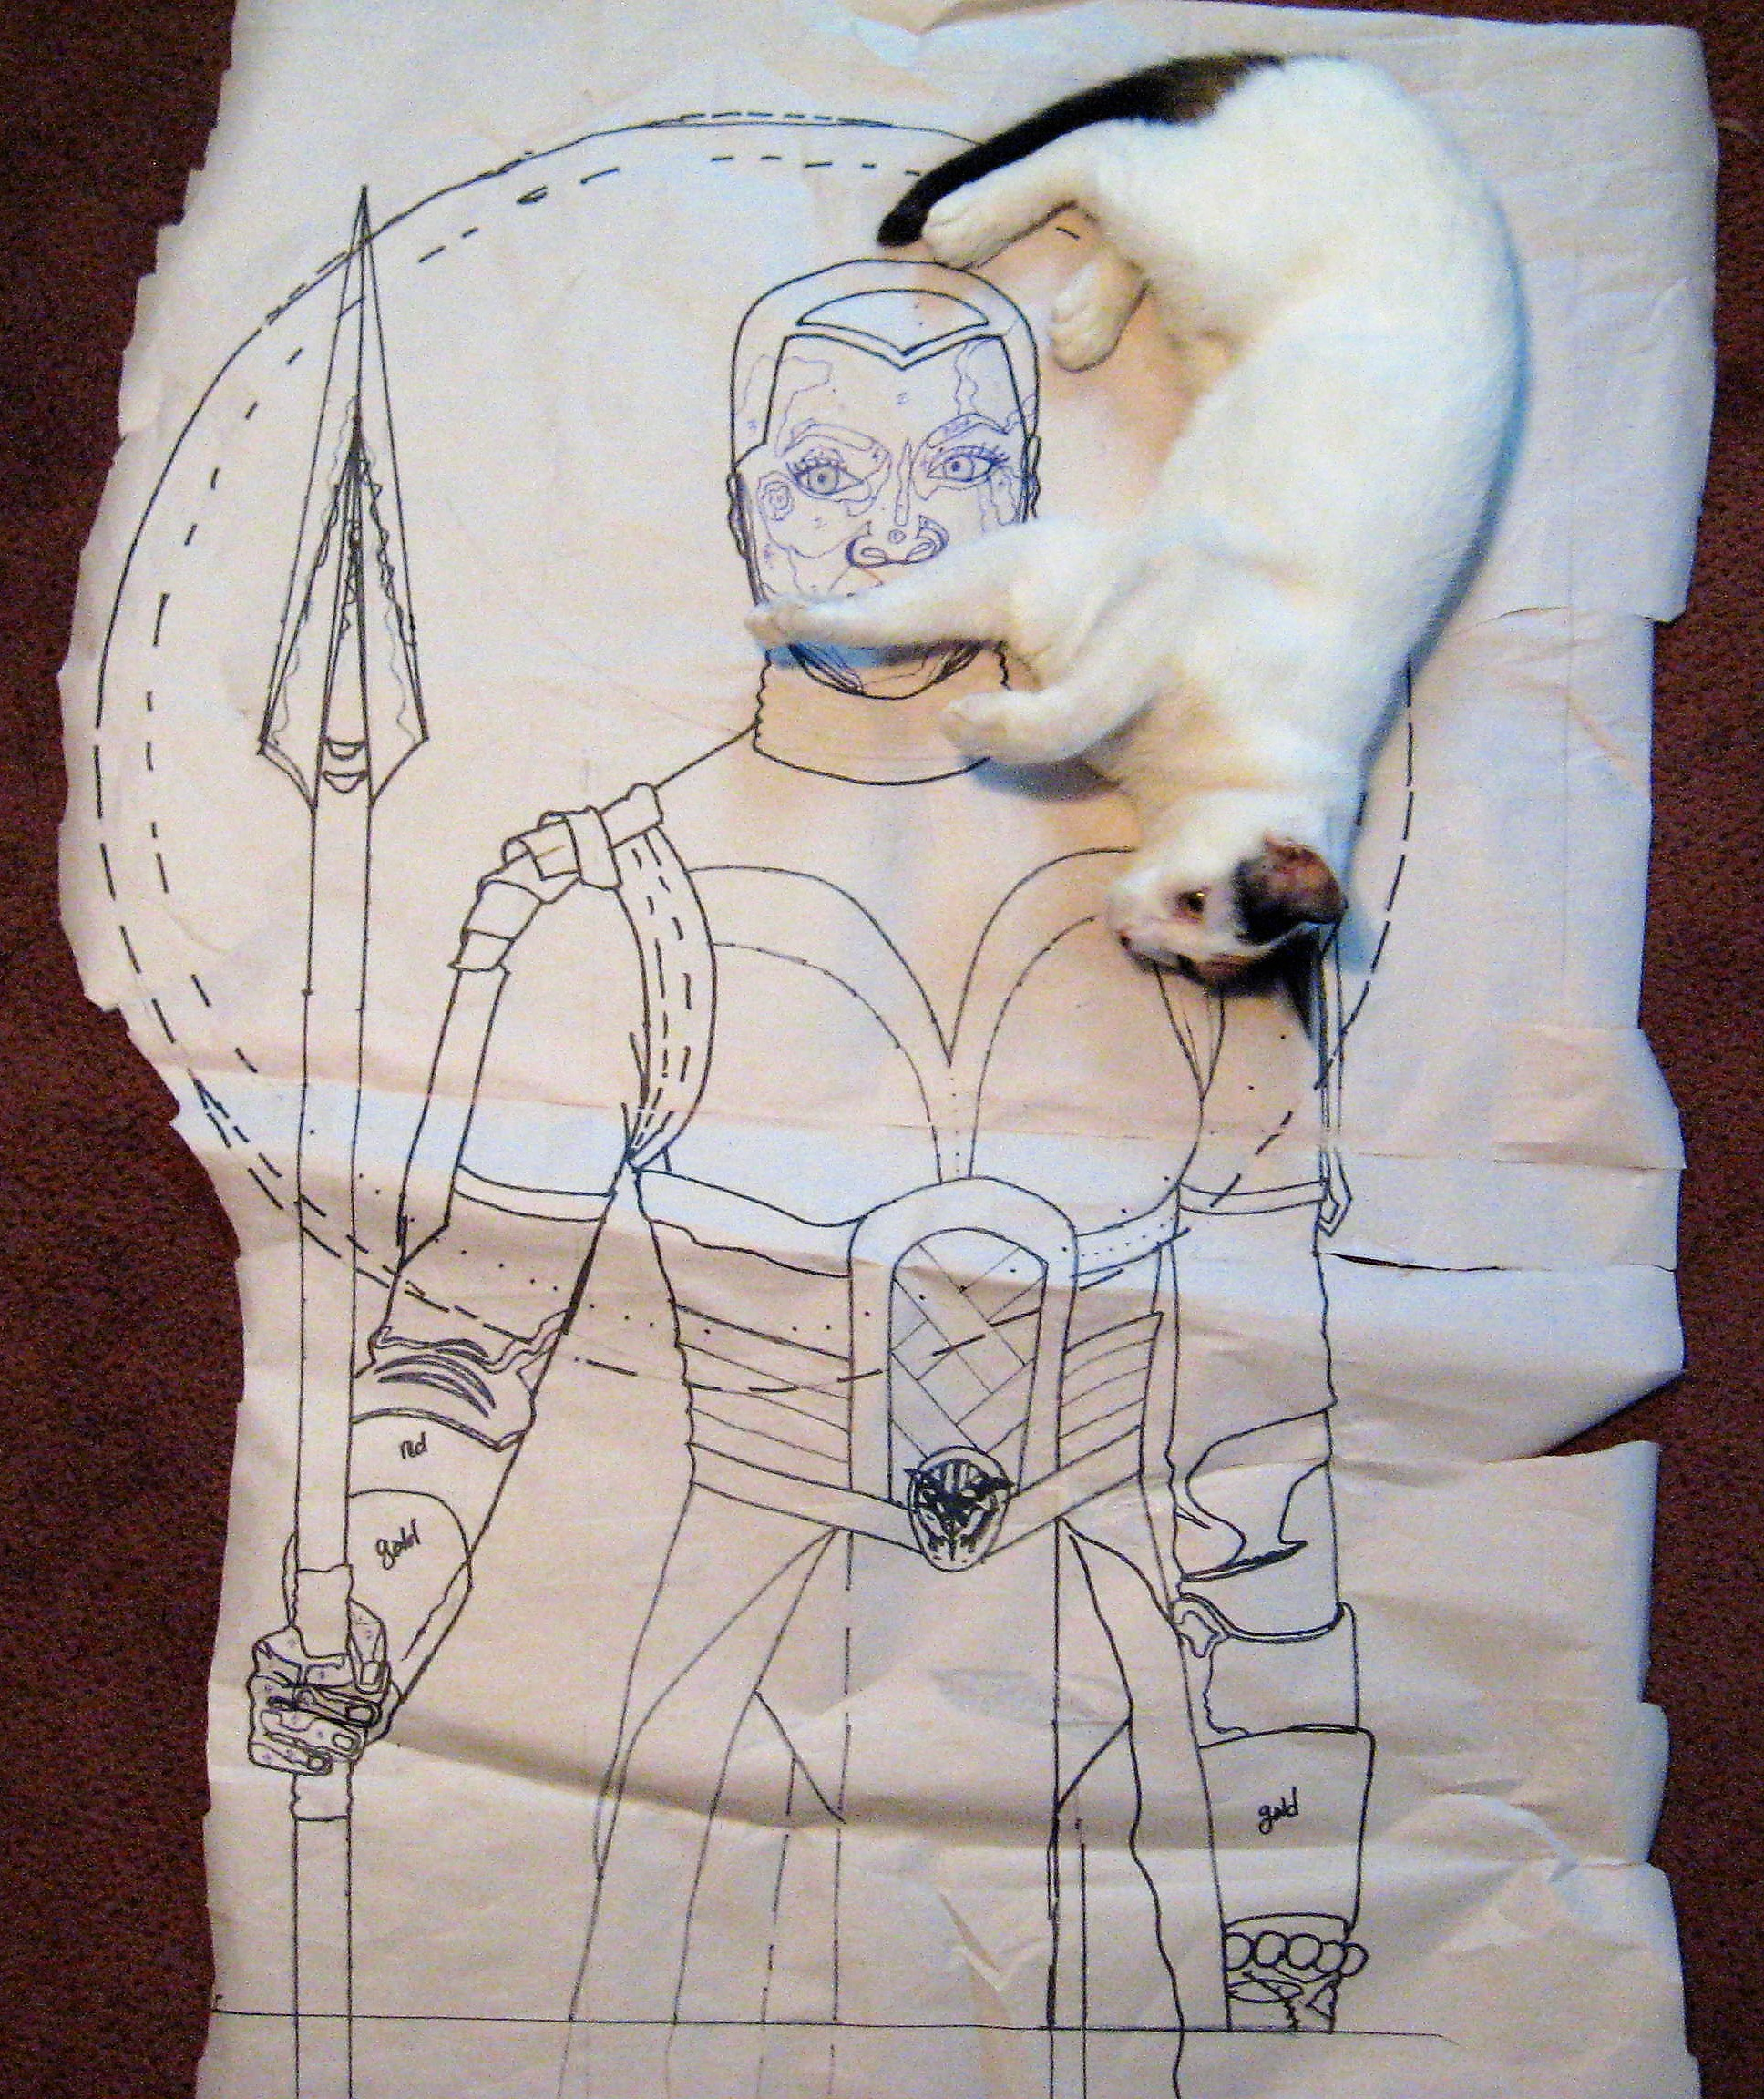 This is the drawing with a photo bomb from Callie! When I begin a quilt I have to choose what will be done in fused applique, thread painting, embellishments and fabric painting. While I was beginning this quilt the Upper Michigan weather has been full of snowstorms, icy drizzle and the return of the polar vortex. I had extra free time due to snow days at my salon job. Also the announcement of the Academy Award categories were happening as I was cutting out the applique pieces. I was very excited Black Panther had secured so many nominations. When the costumes from Black Panther were included in the Costume Design category I learned who the designer was-Ruth E. Carter. I have now began to follow all of her social media pages and realize she has been doing movie costume design for ever and I pray this talented woman wins in her category tonight at the Oscars!